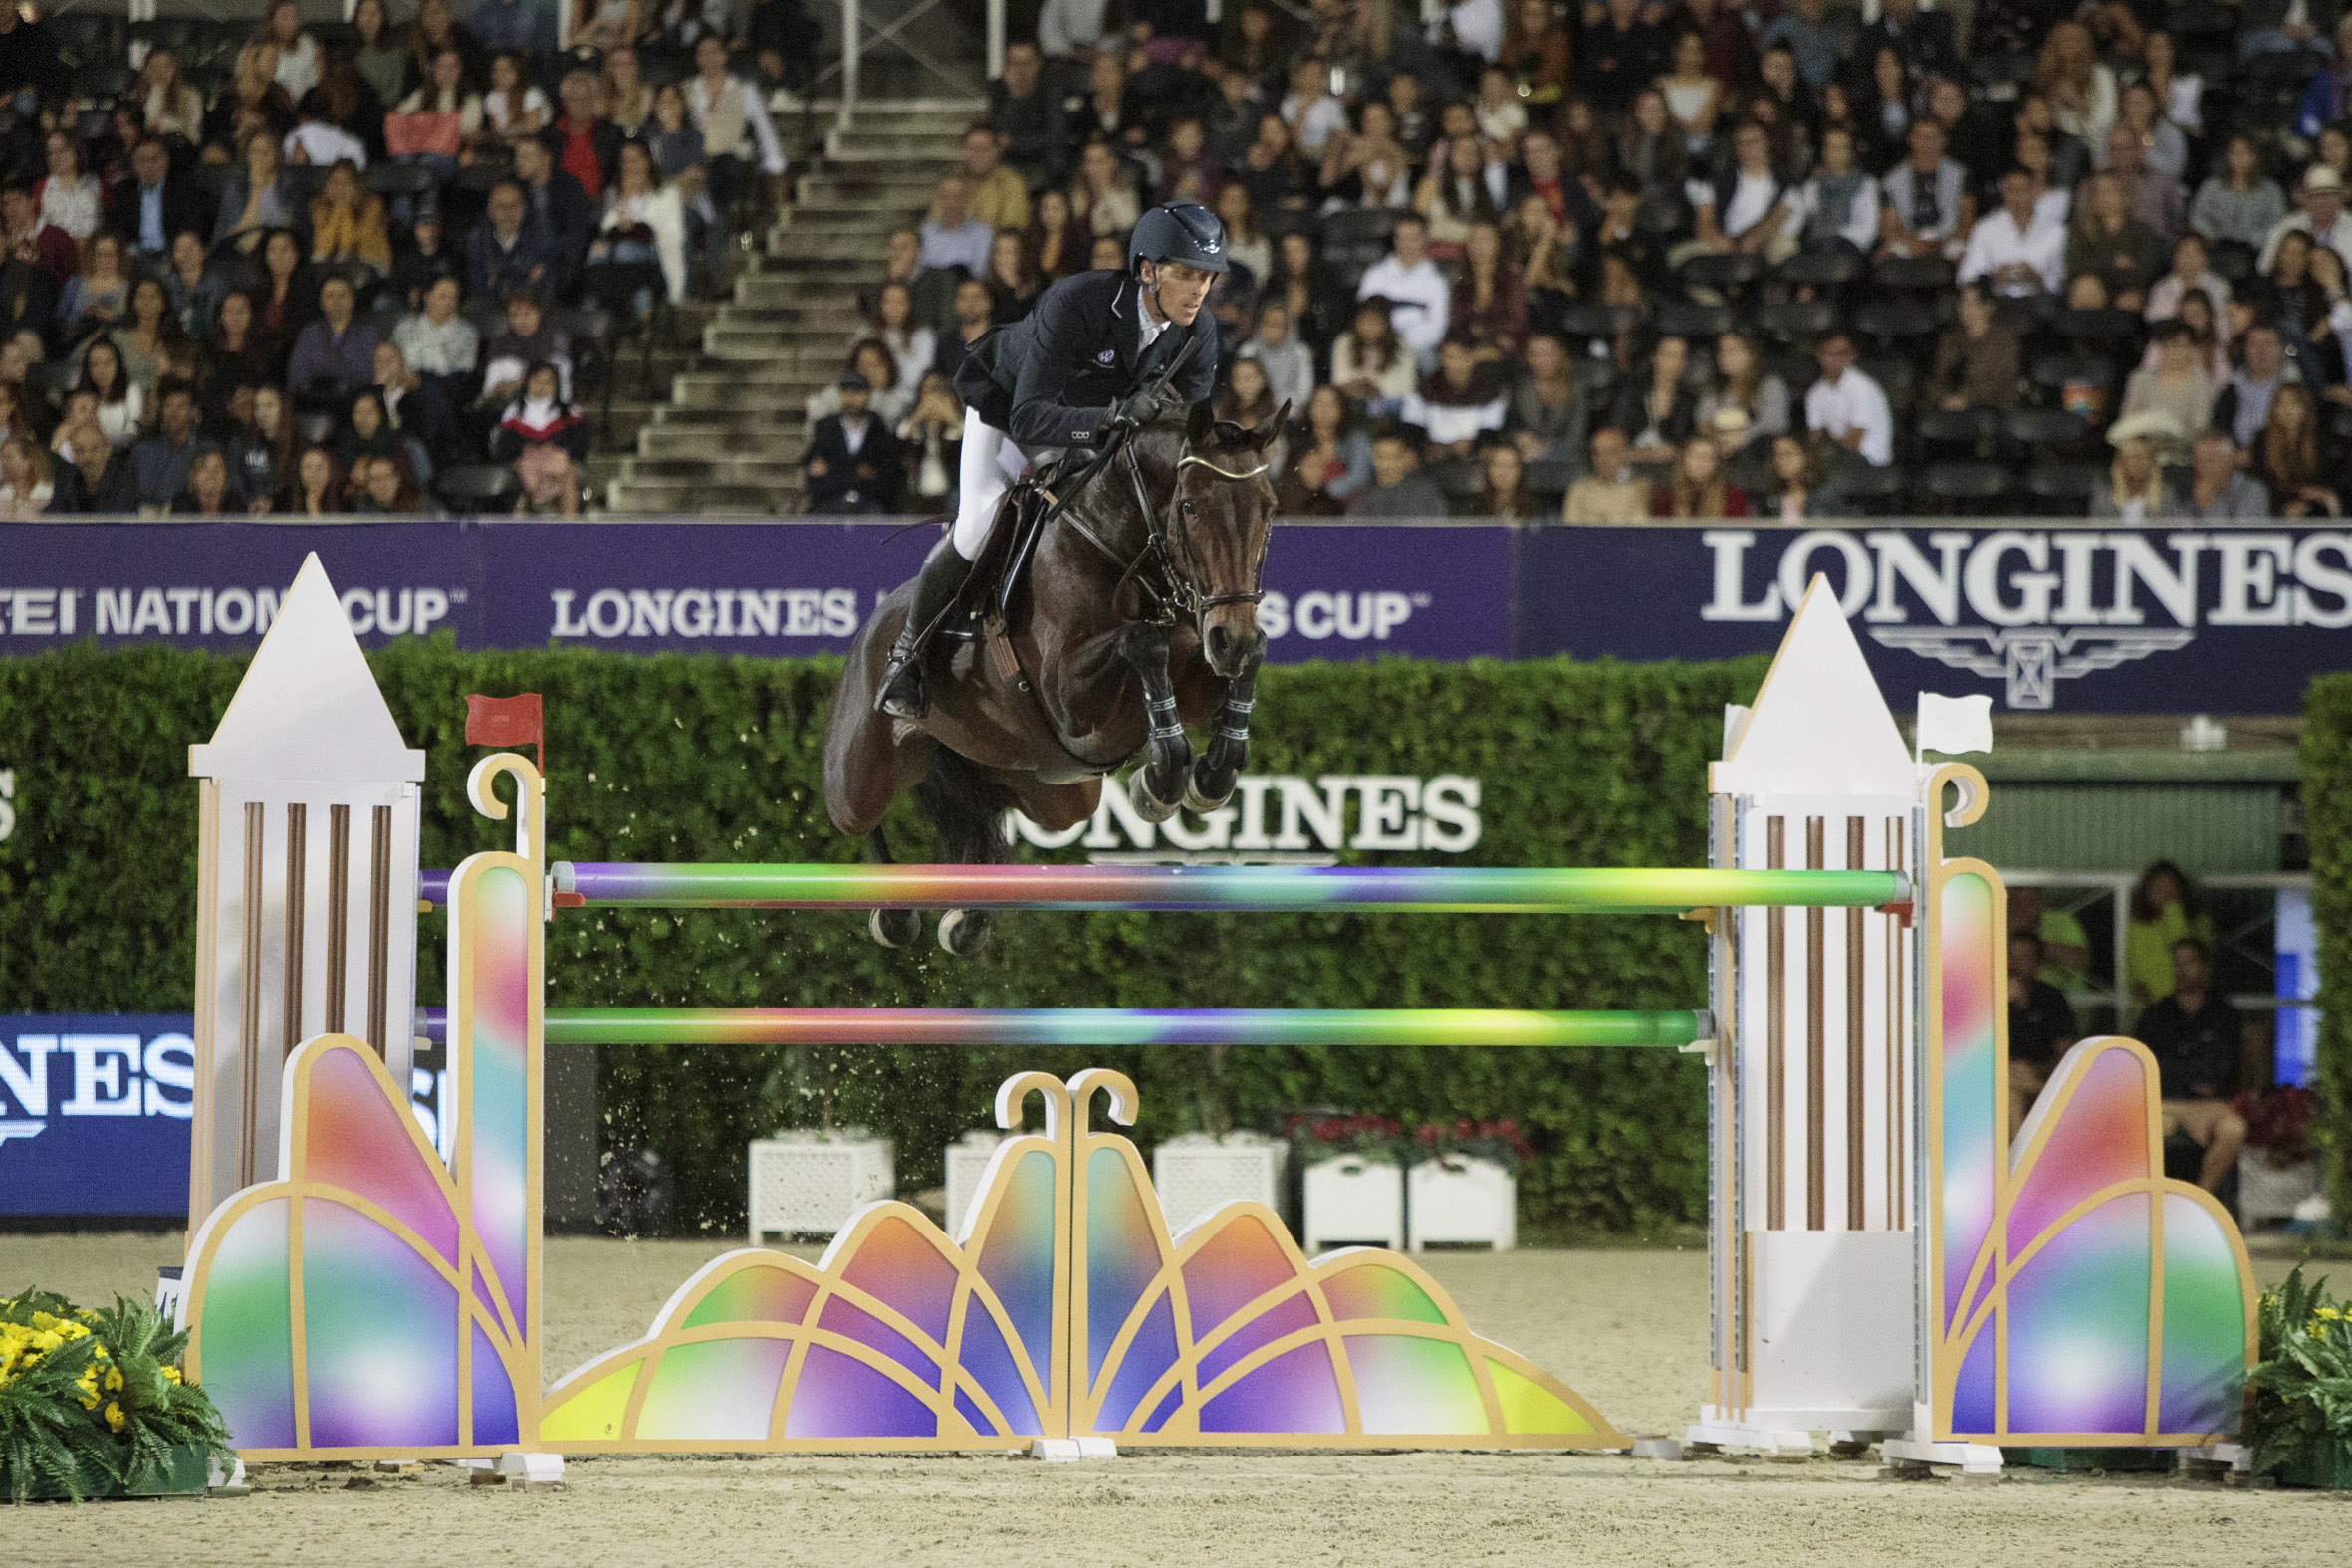 22 teams will start at the CSIO Barcelona